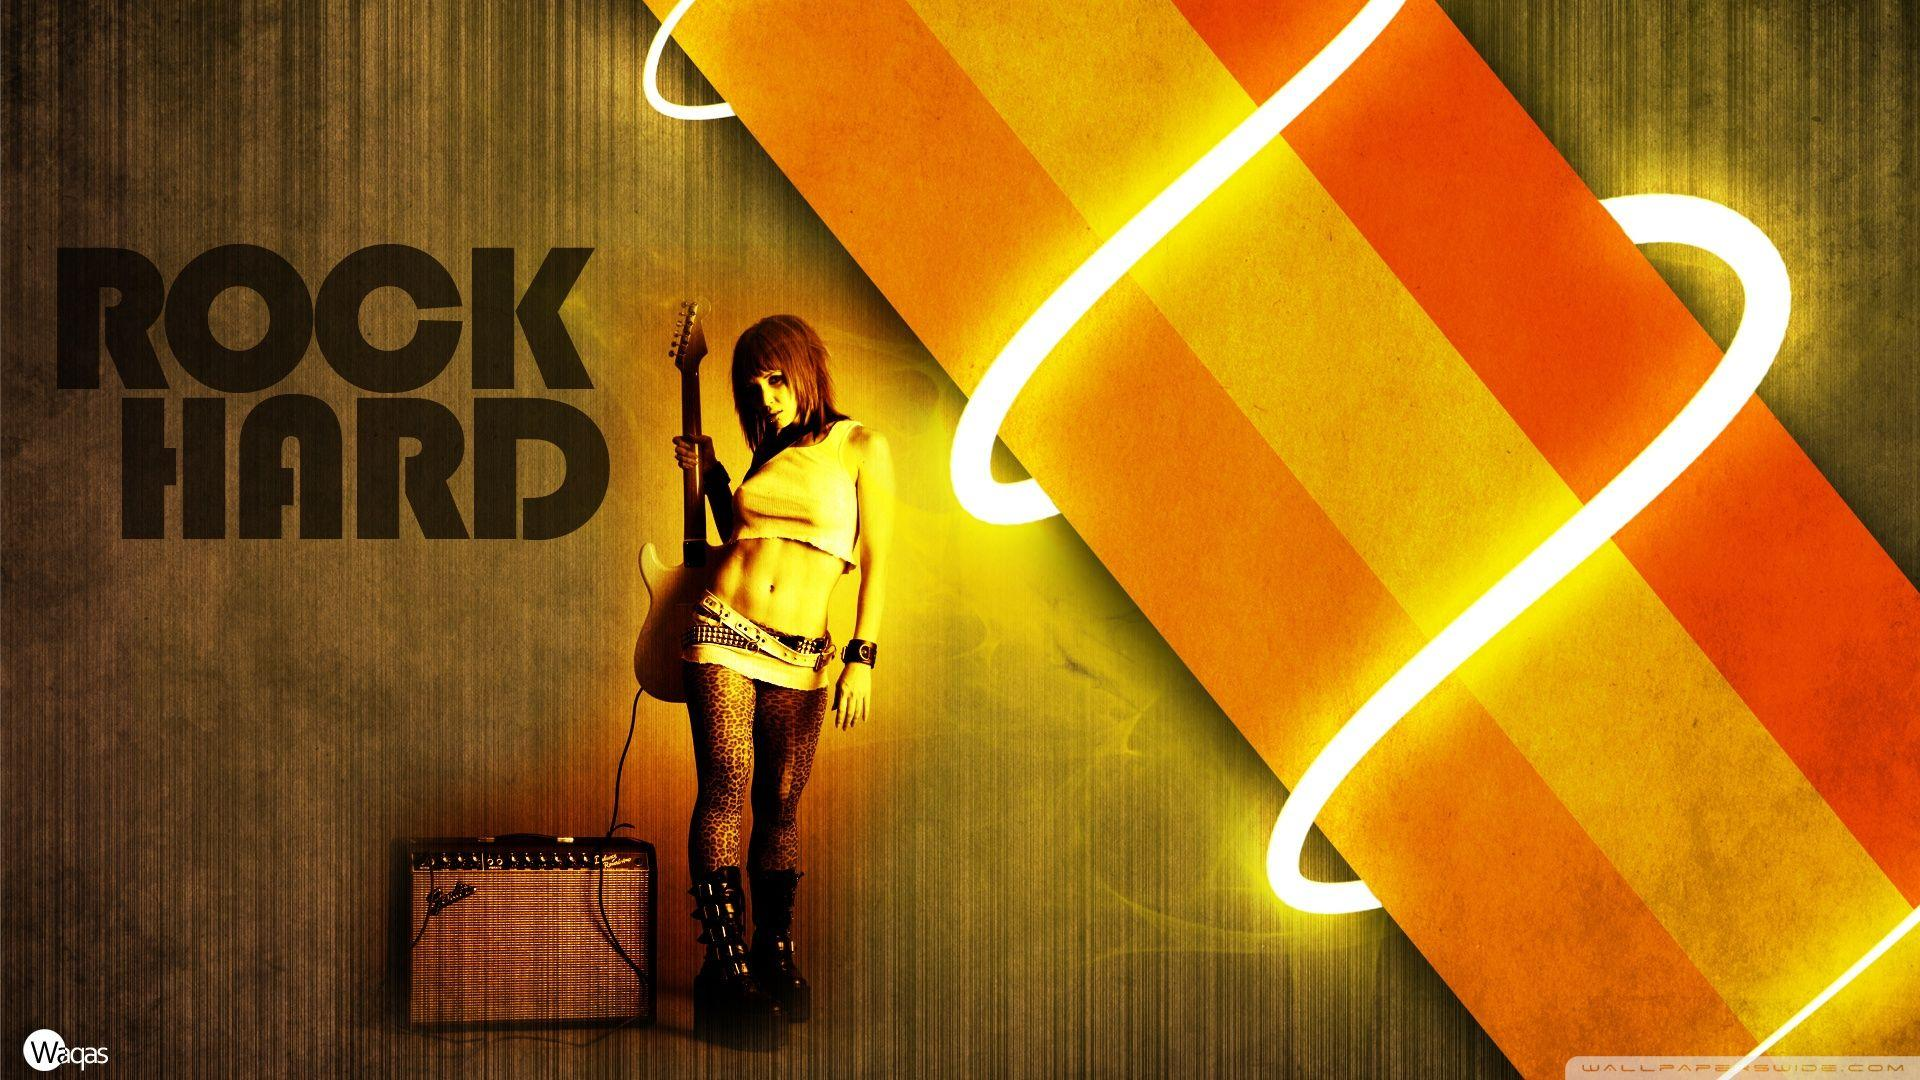 Rock Hard HD desktop wallpapers : High Definition : Fullscreen : Mobile